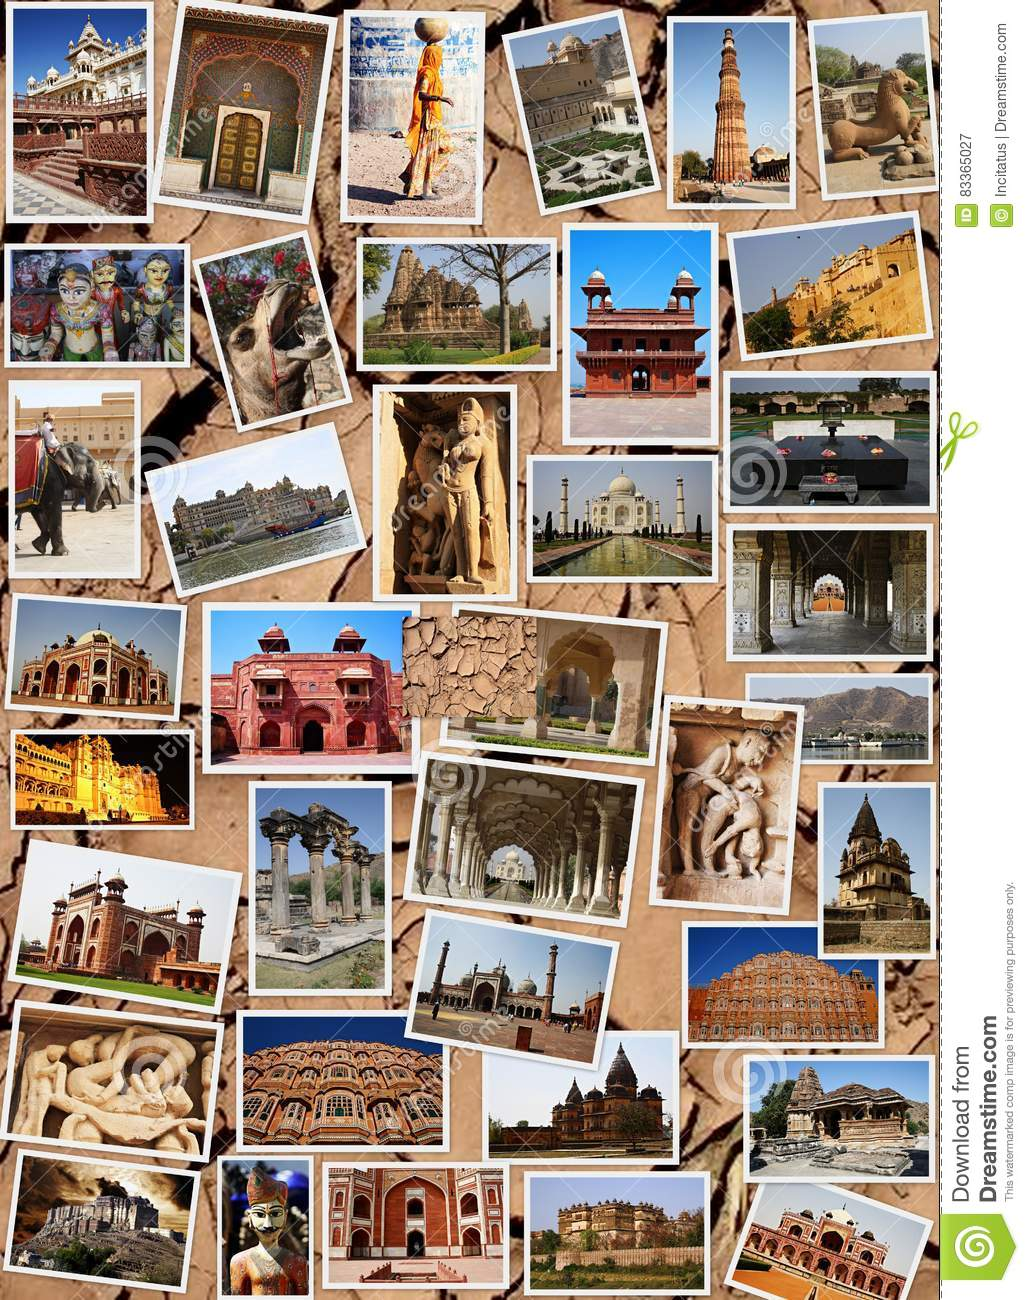 MONUMENTS COLLAGE IN INDIA